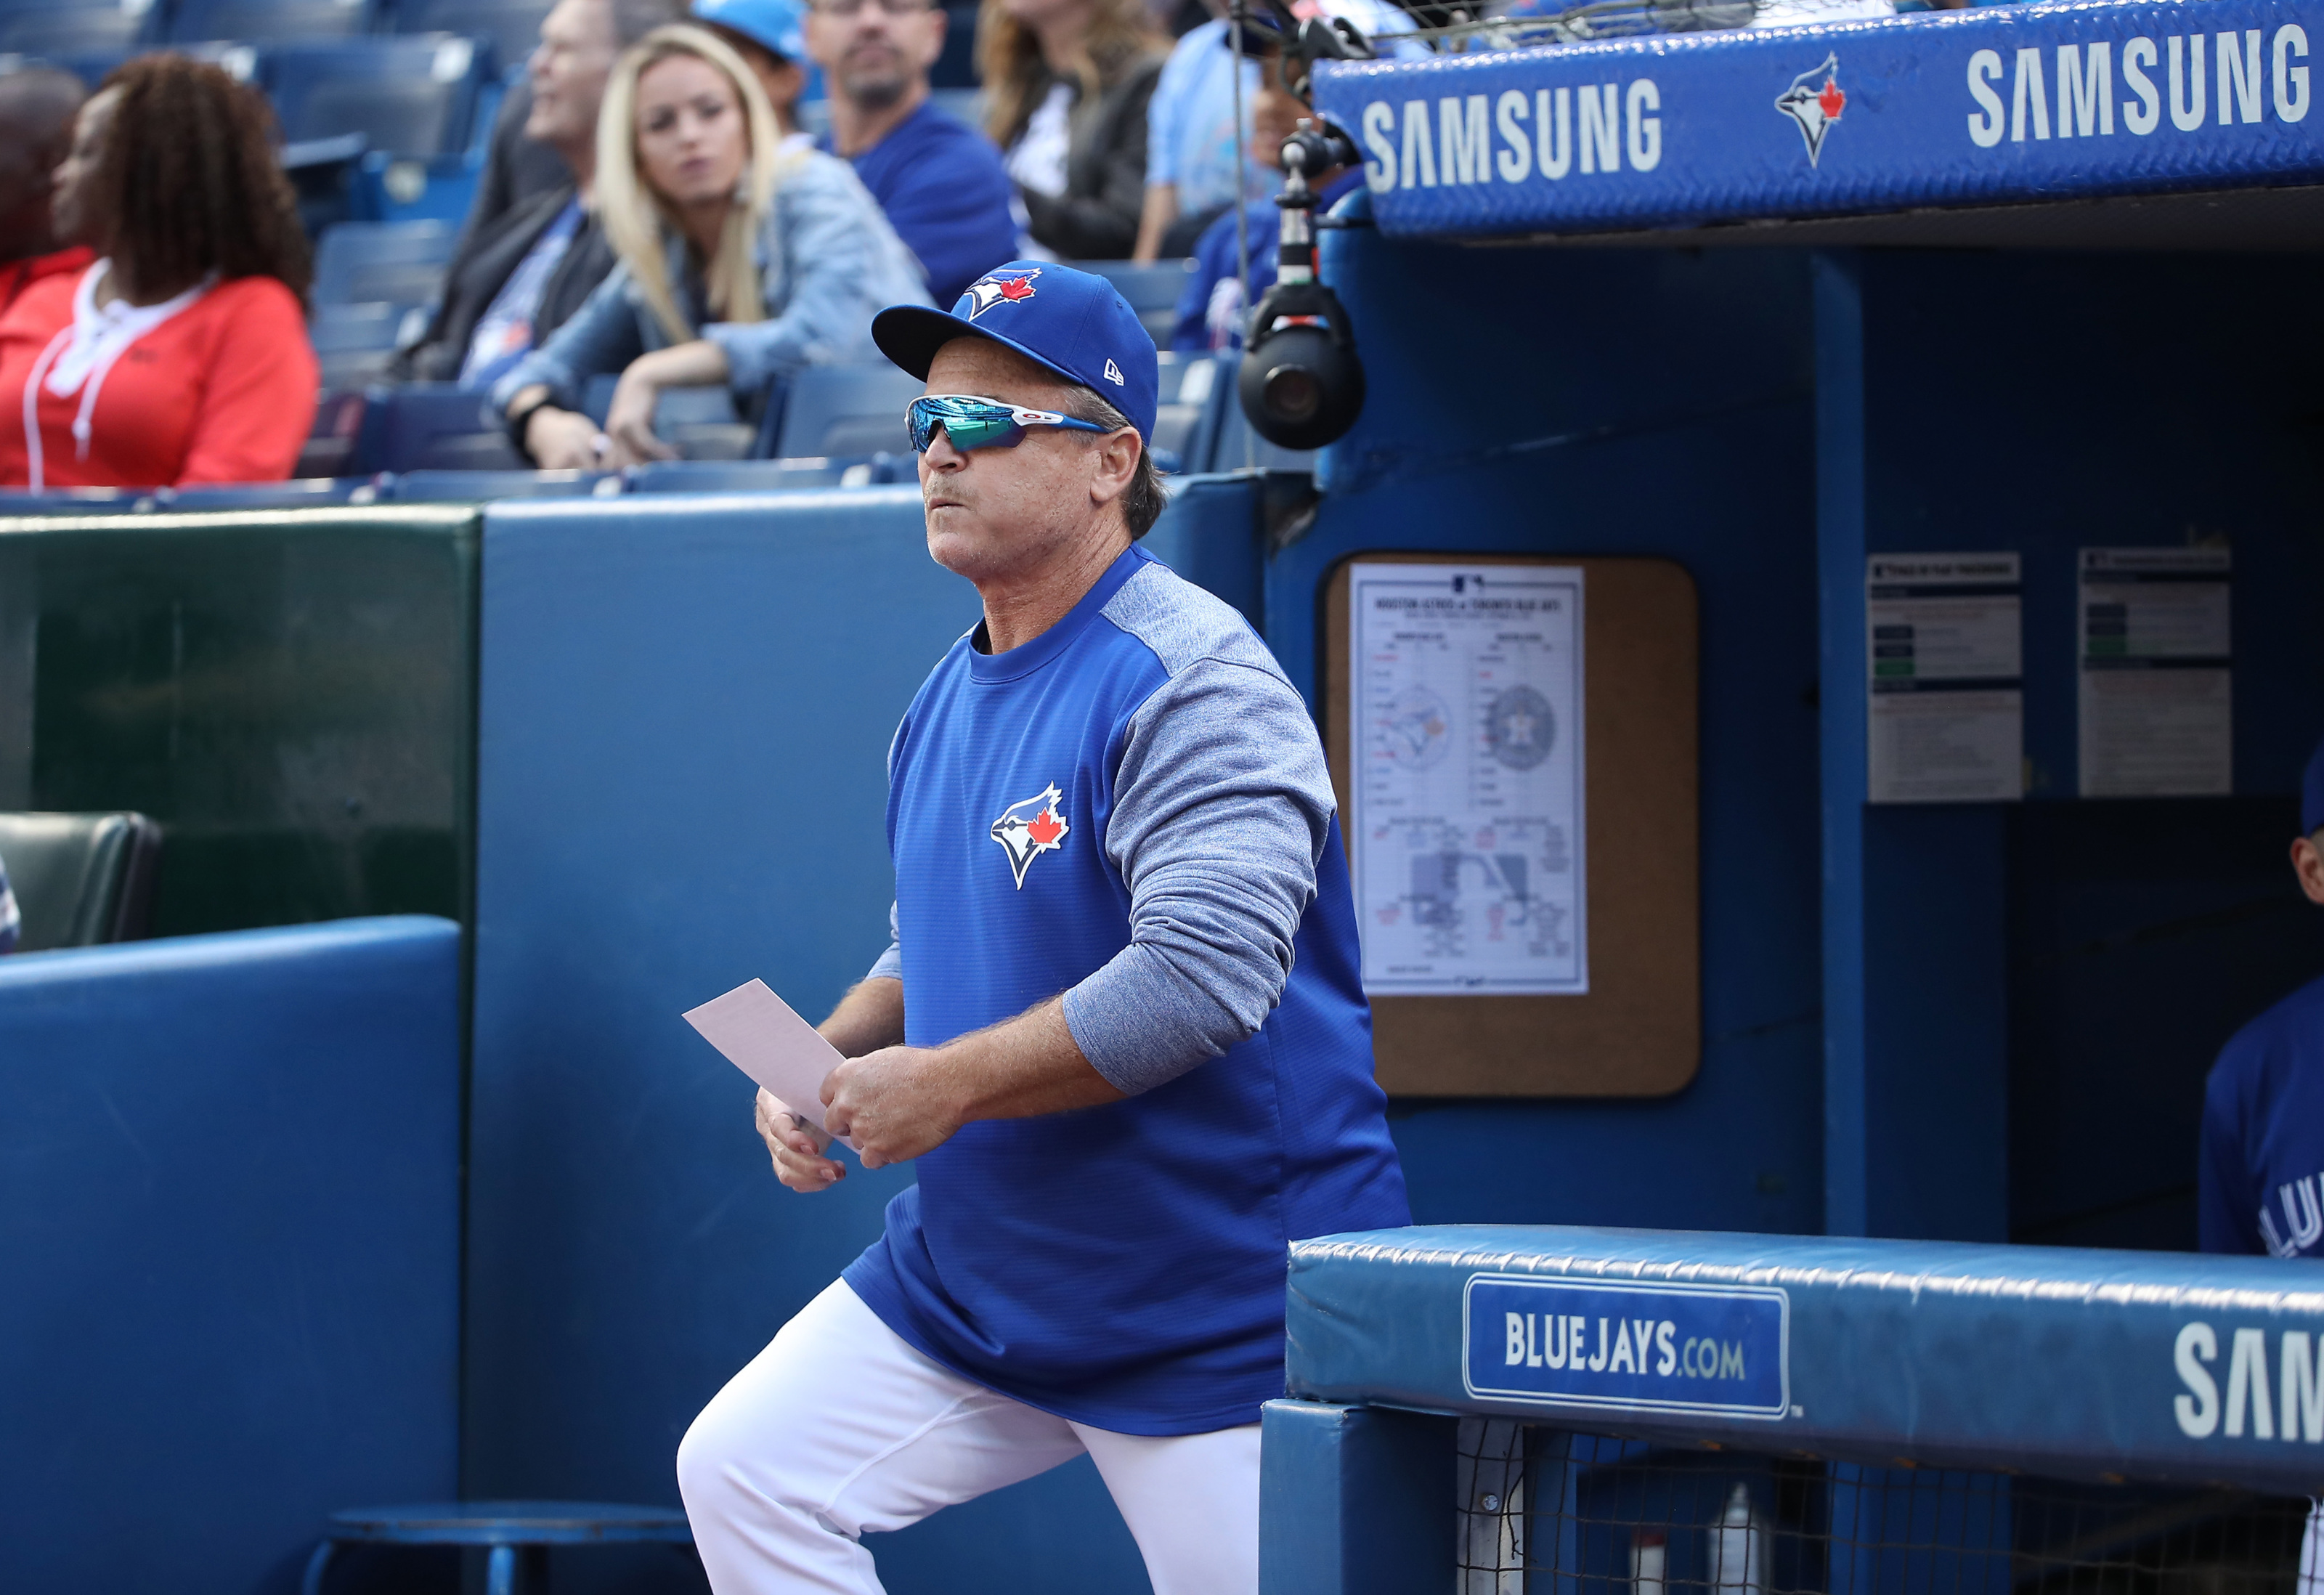 Blue Jays: What did the Opening Day lineup look like five years ago?